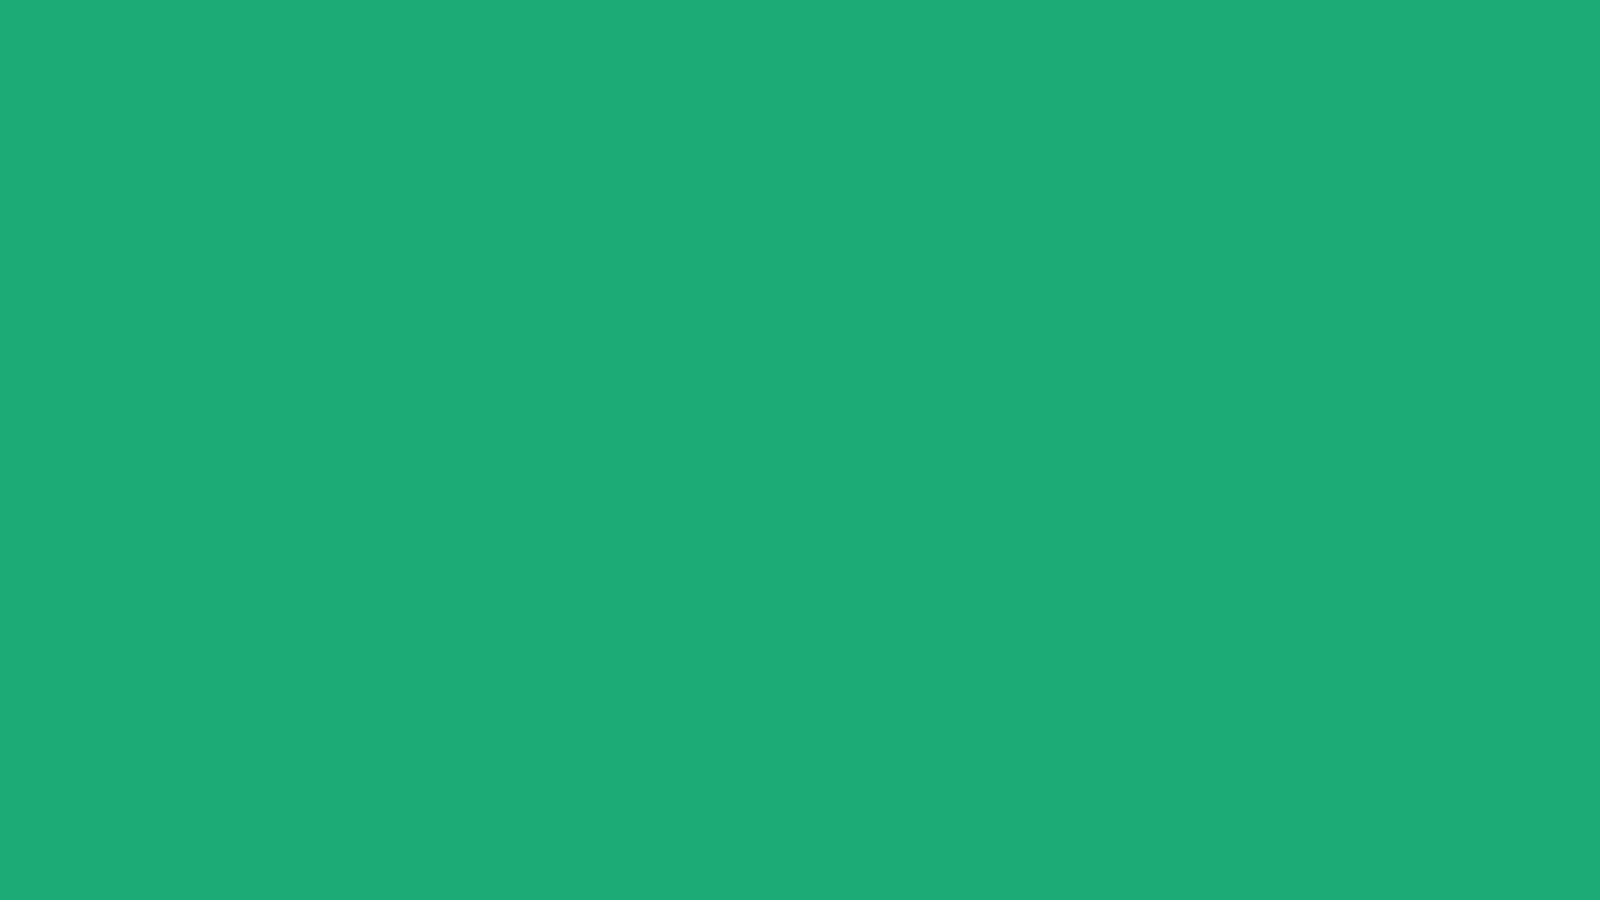 1600x900 Green Crayola Solid Color Background